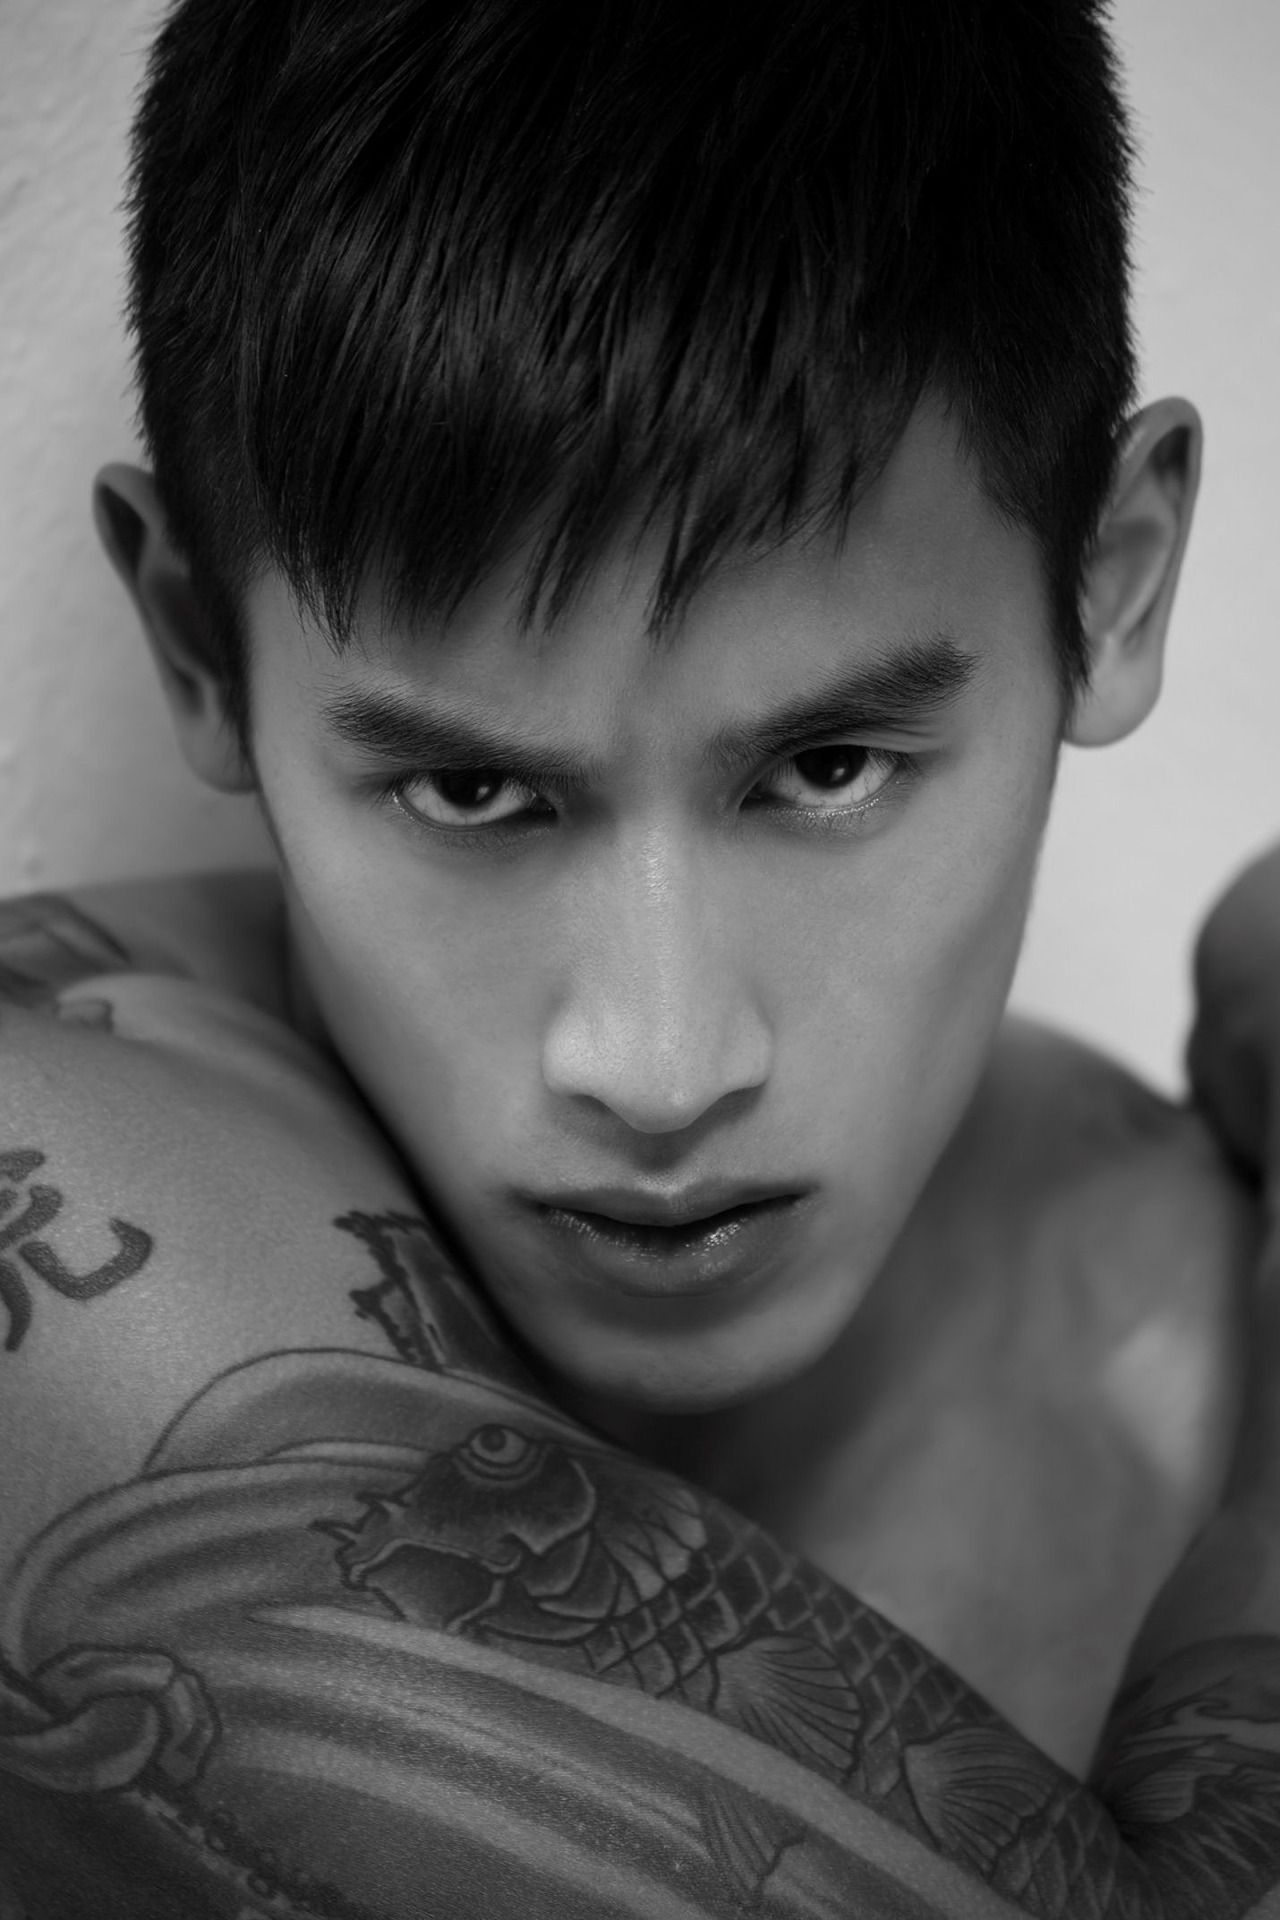 Pin by Row Vert M BaO on Black and White 2 Male